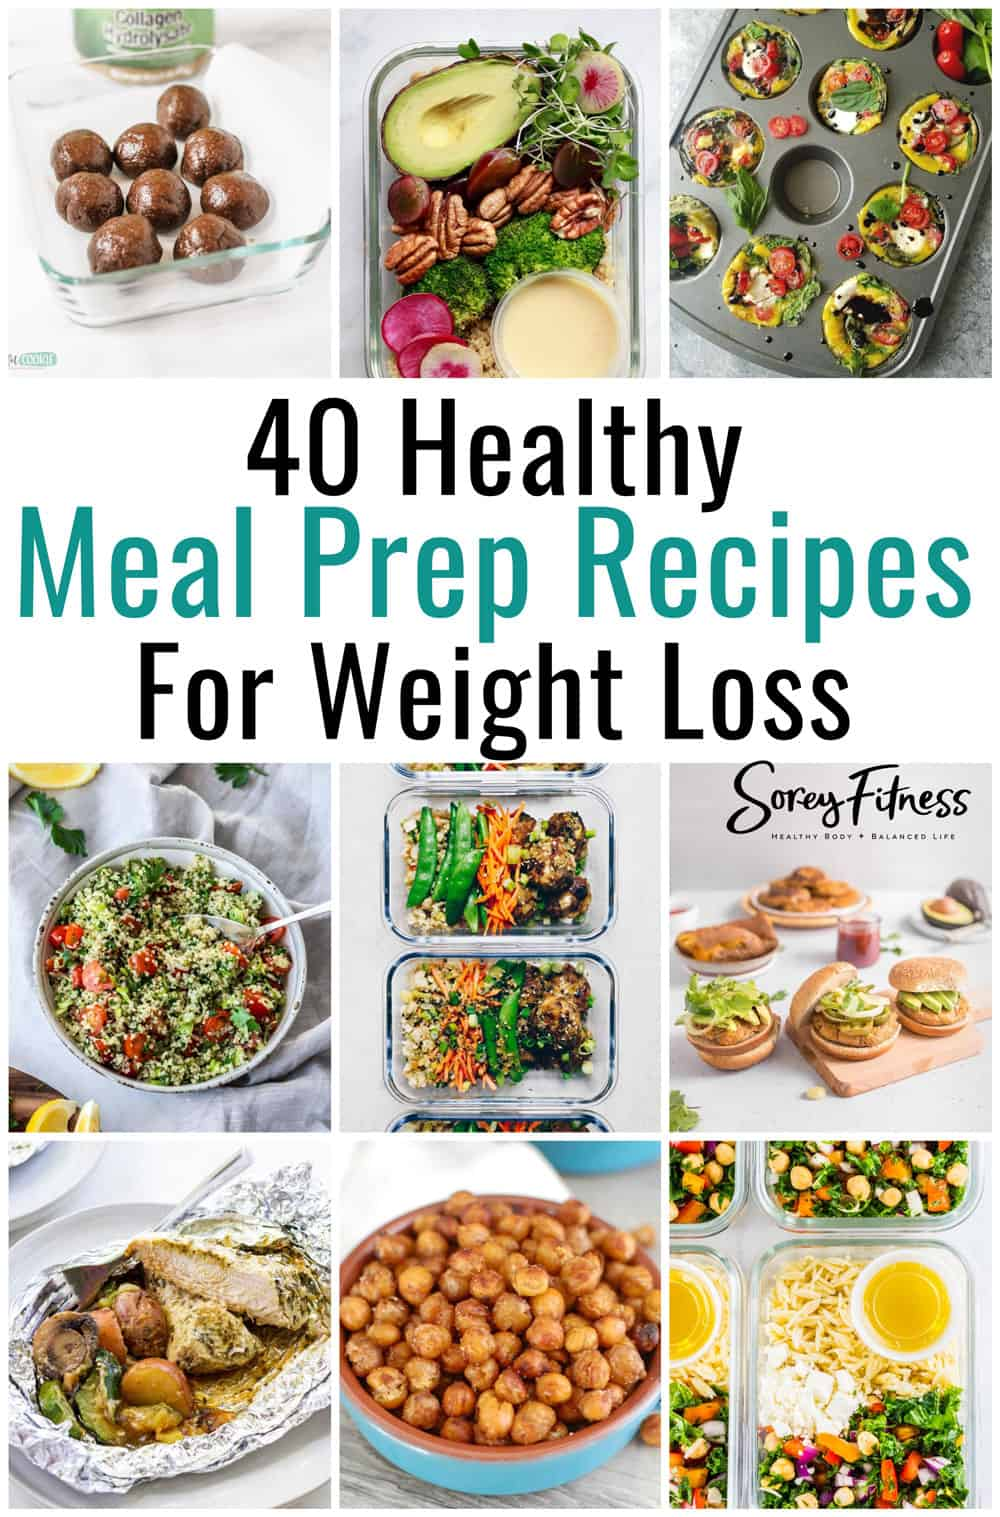 photo collage of meal prep recipes for weight loss